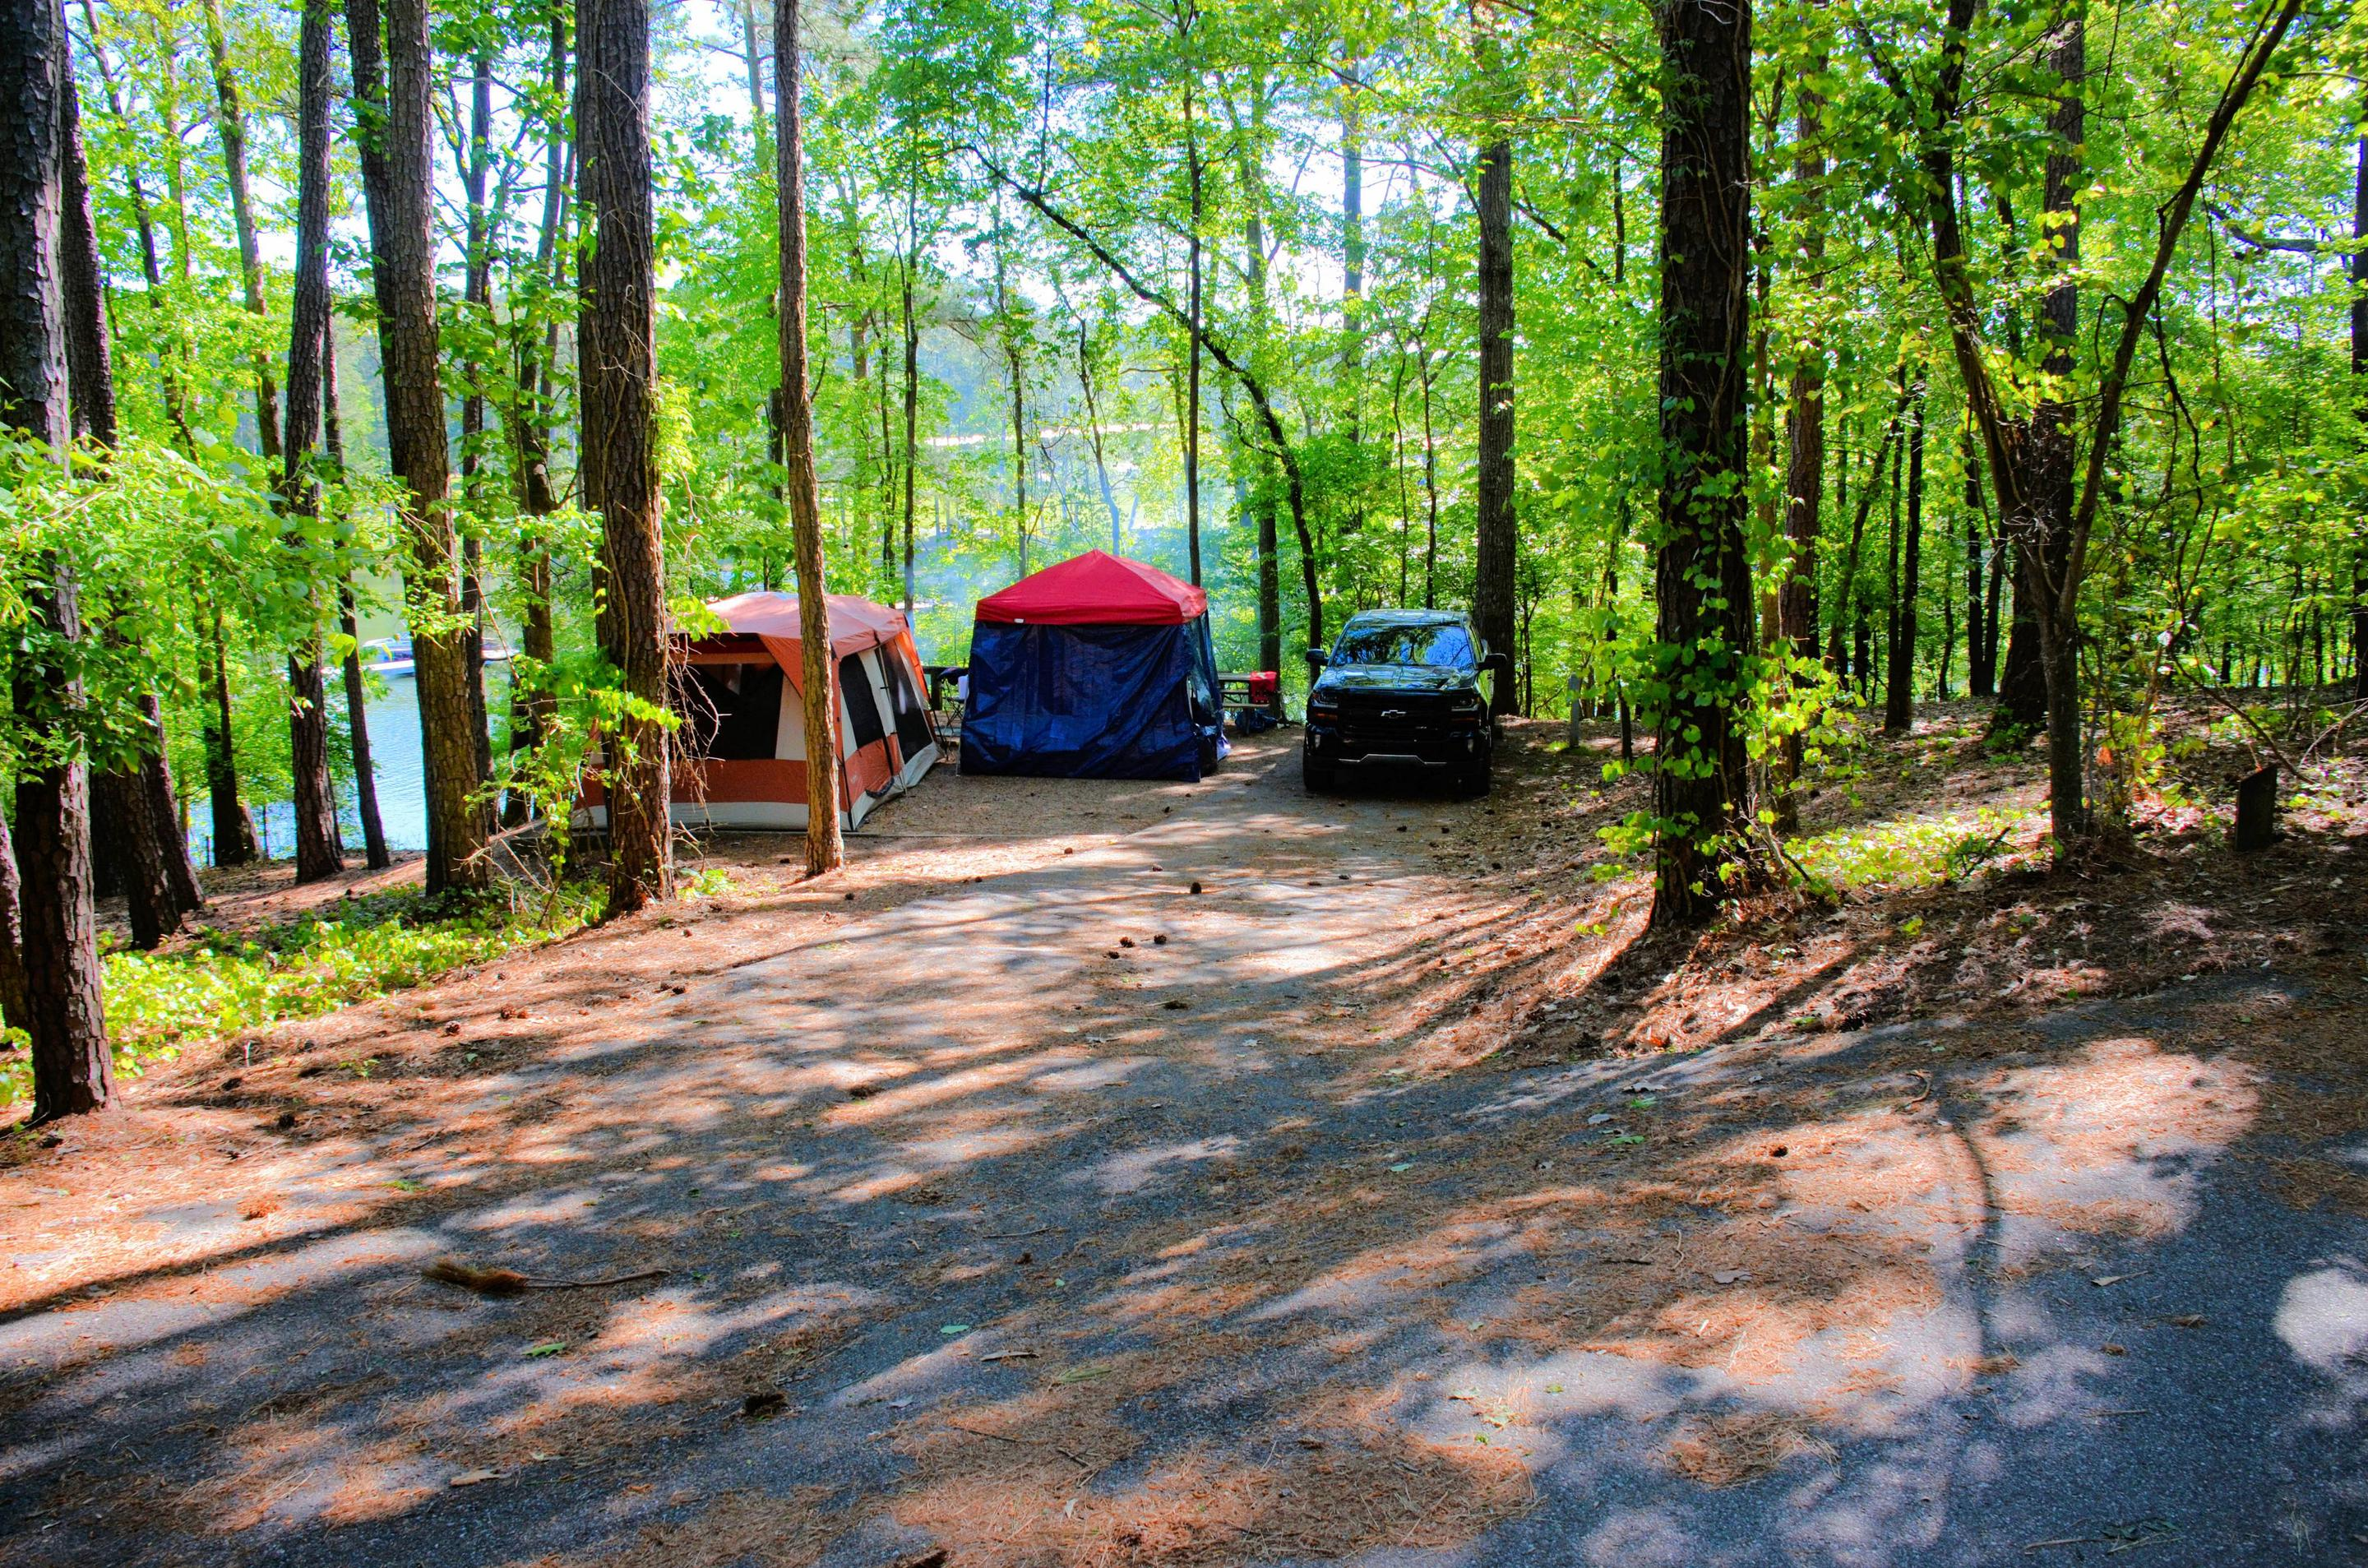 Driveway slope, utilities-side clearance, awning-side clearanceMcKinney Campground, campsite 20.